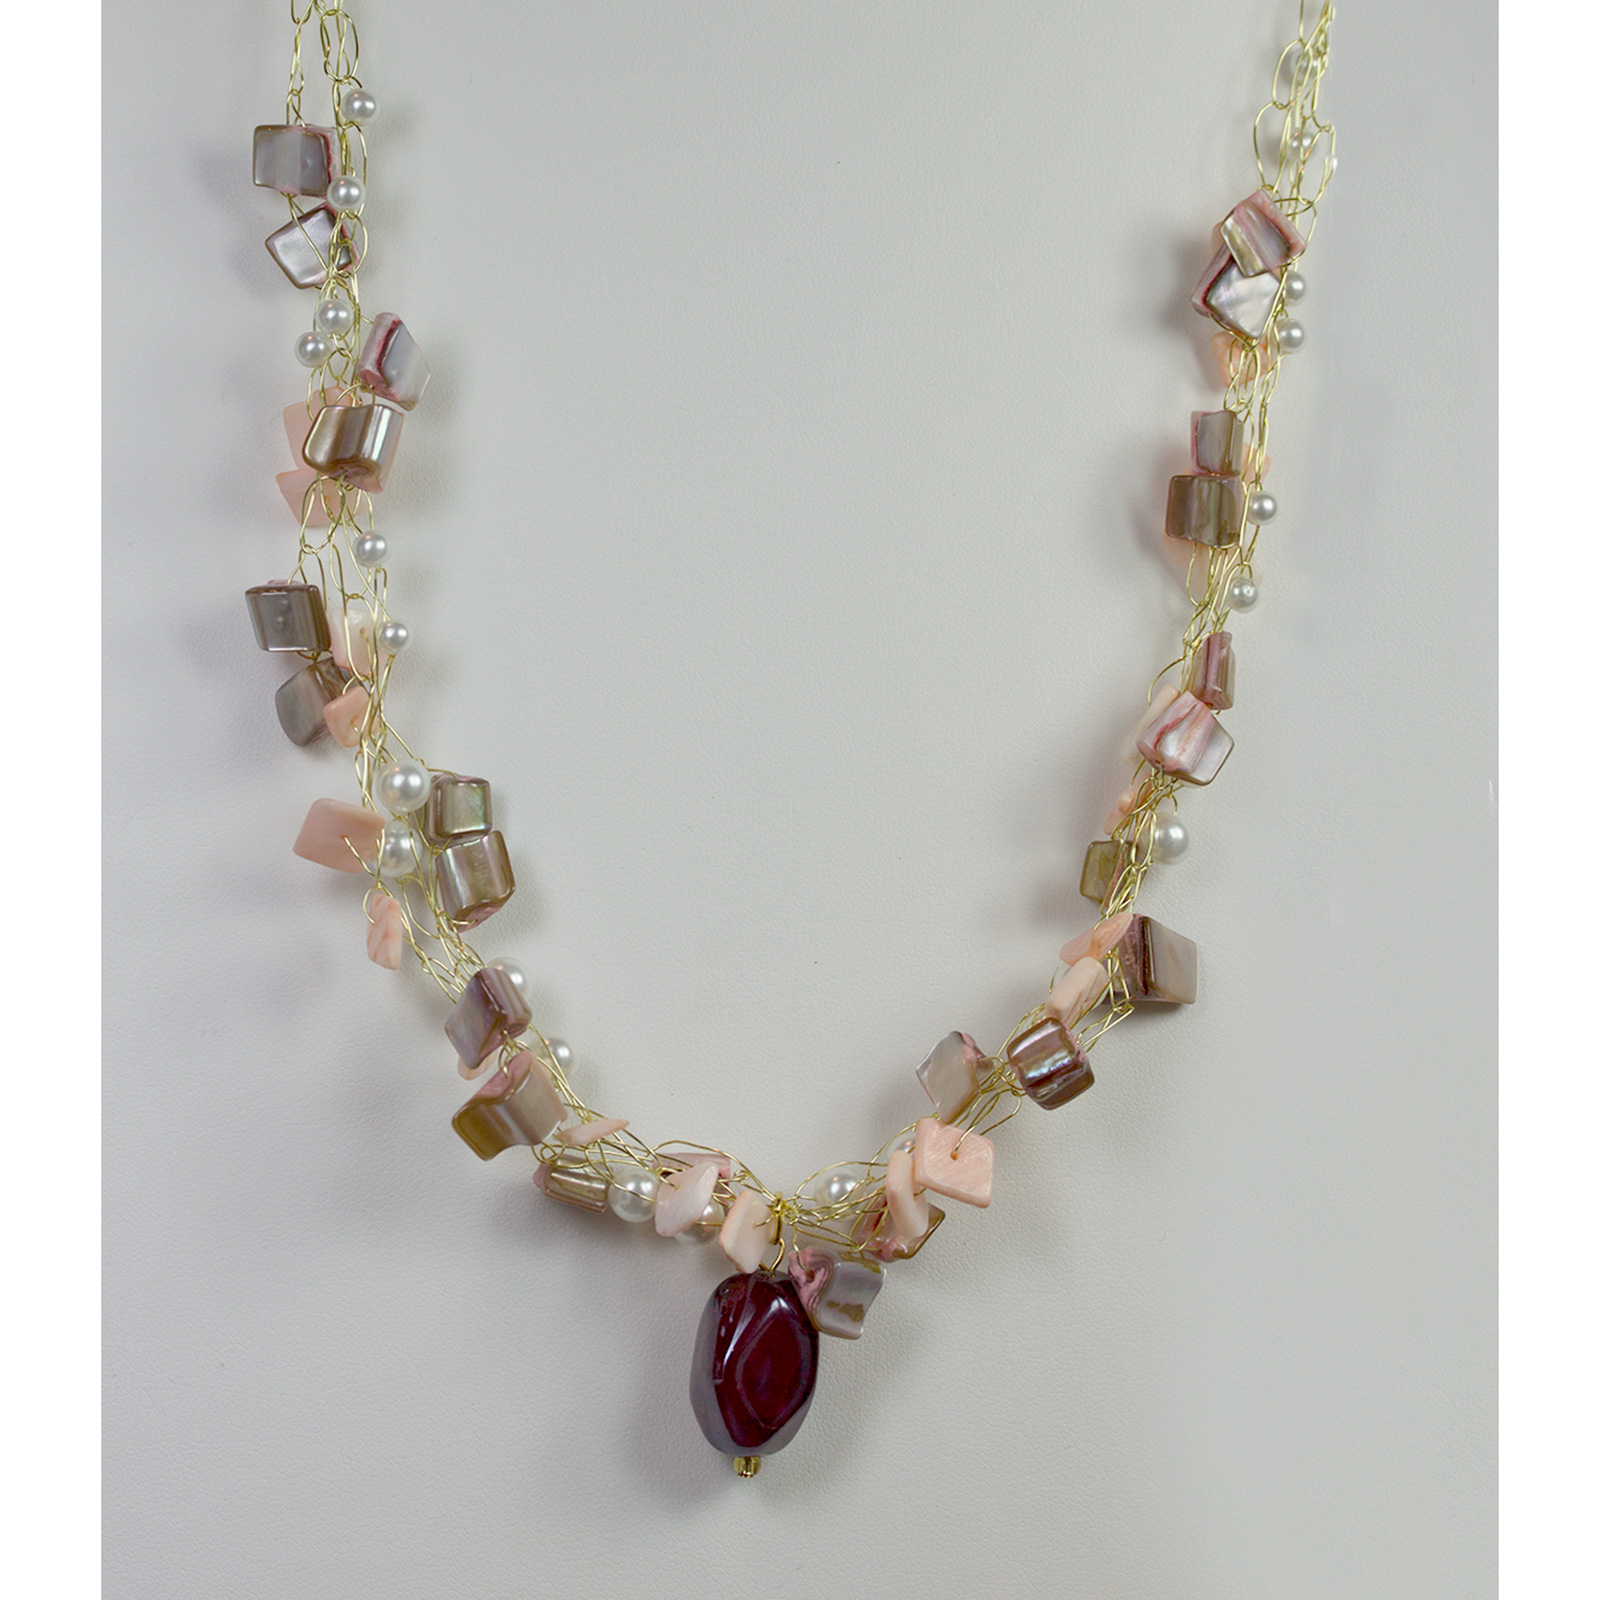 Designer Jewelry - Wire Crocheted Pearl & Shell Necklace